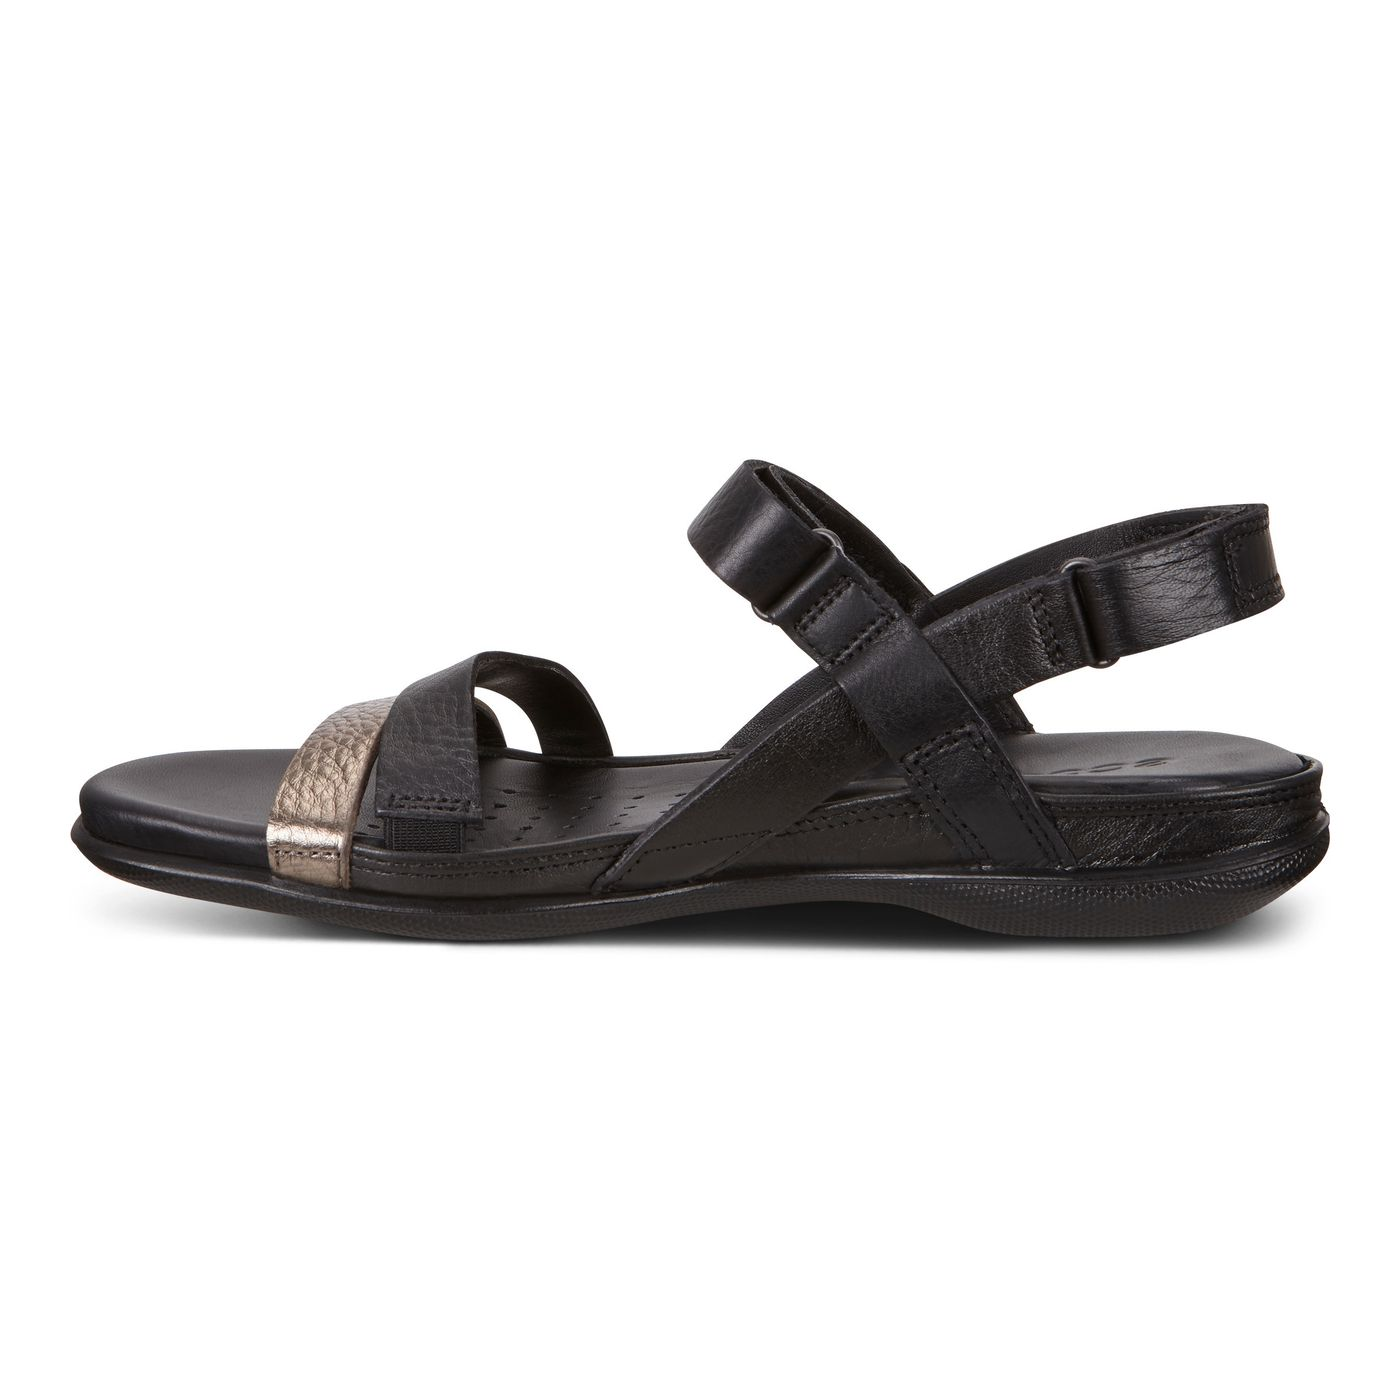 Womens strappy sandals, Ecco shoes